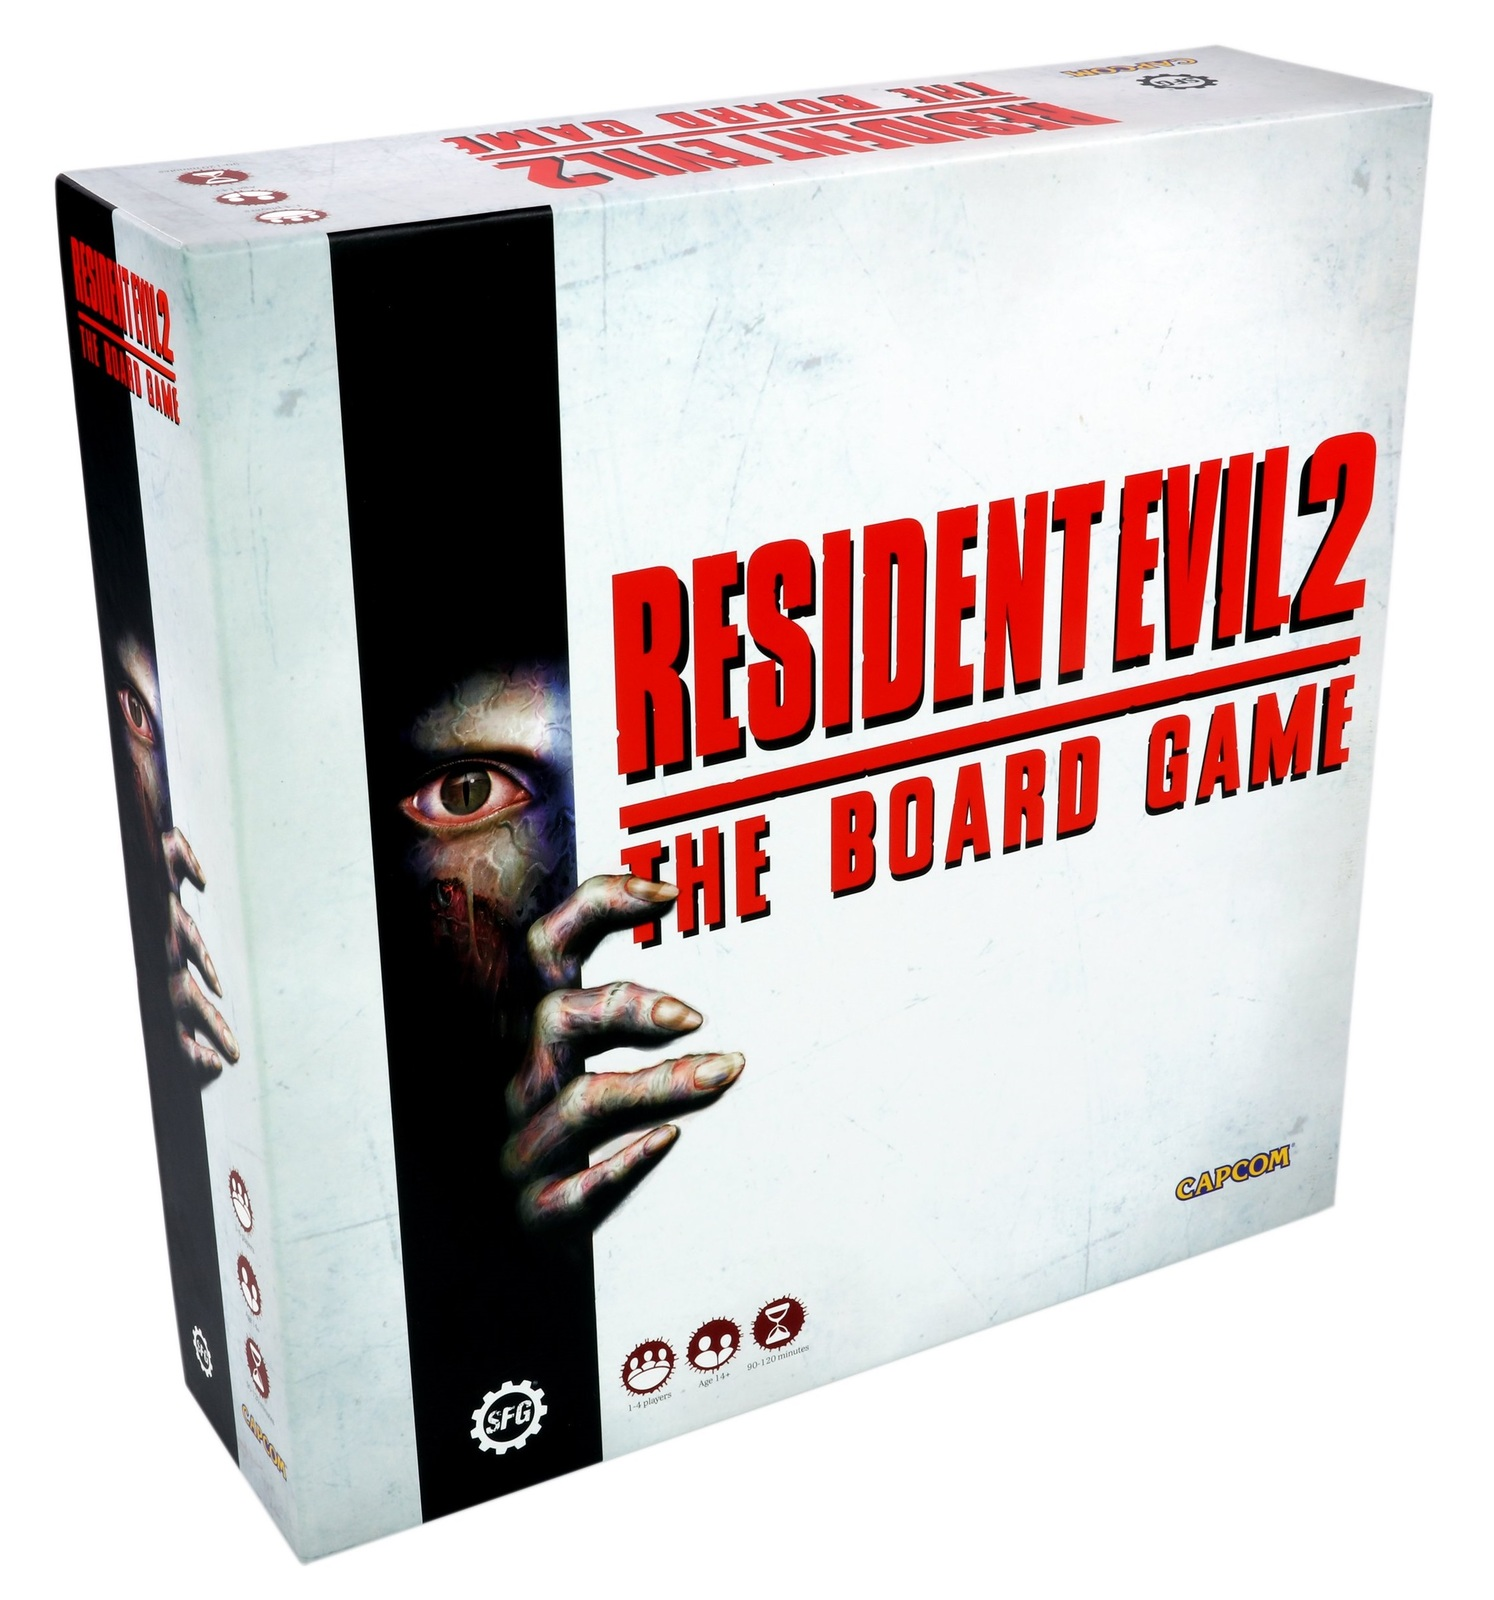 Resident Evil 2 - The Board Game image